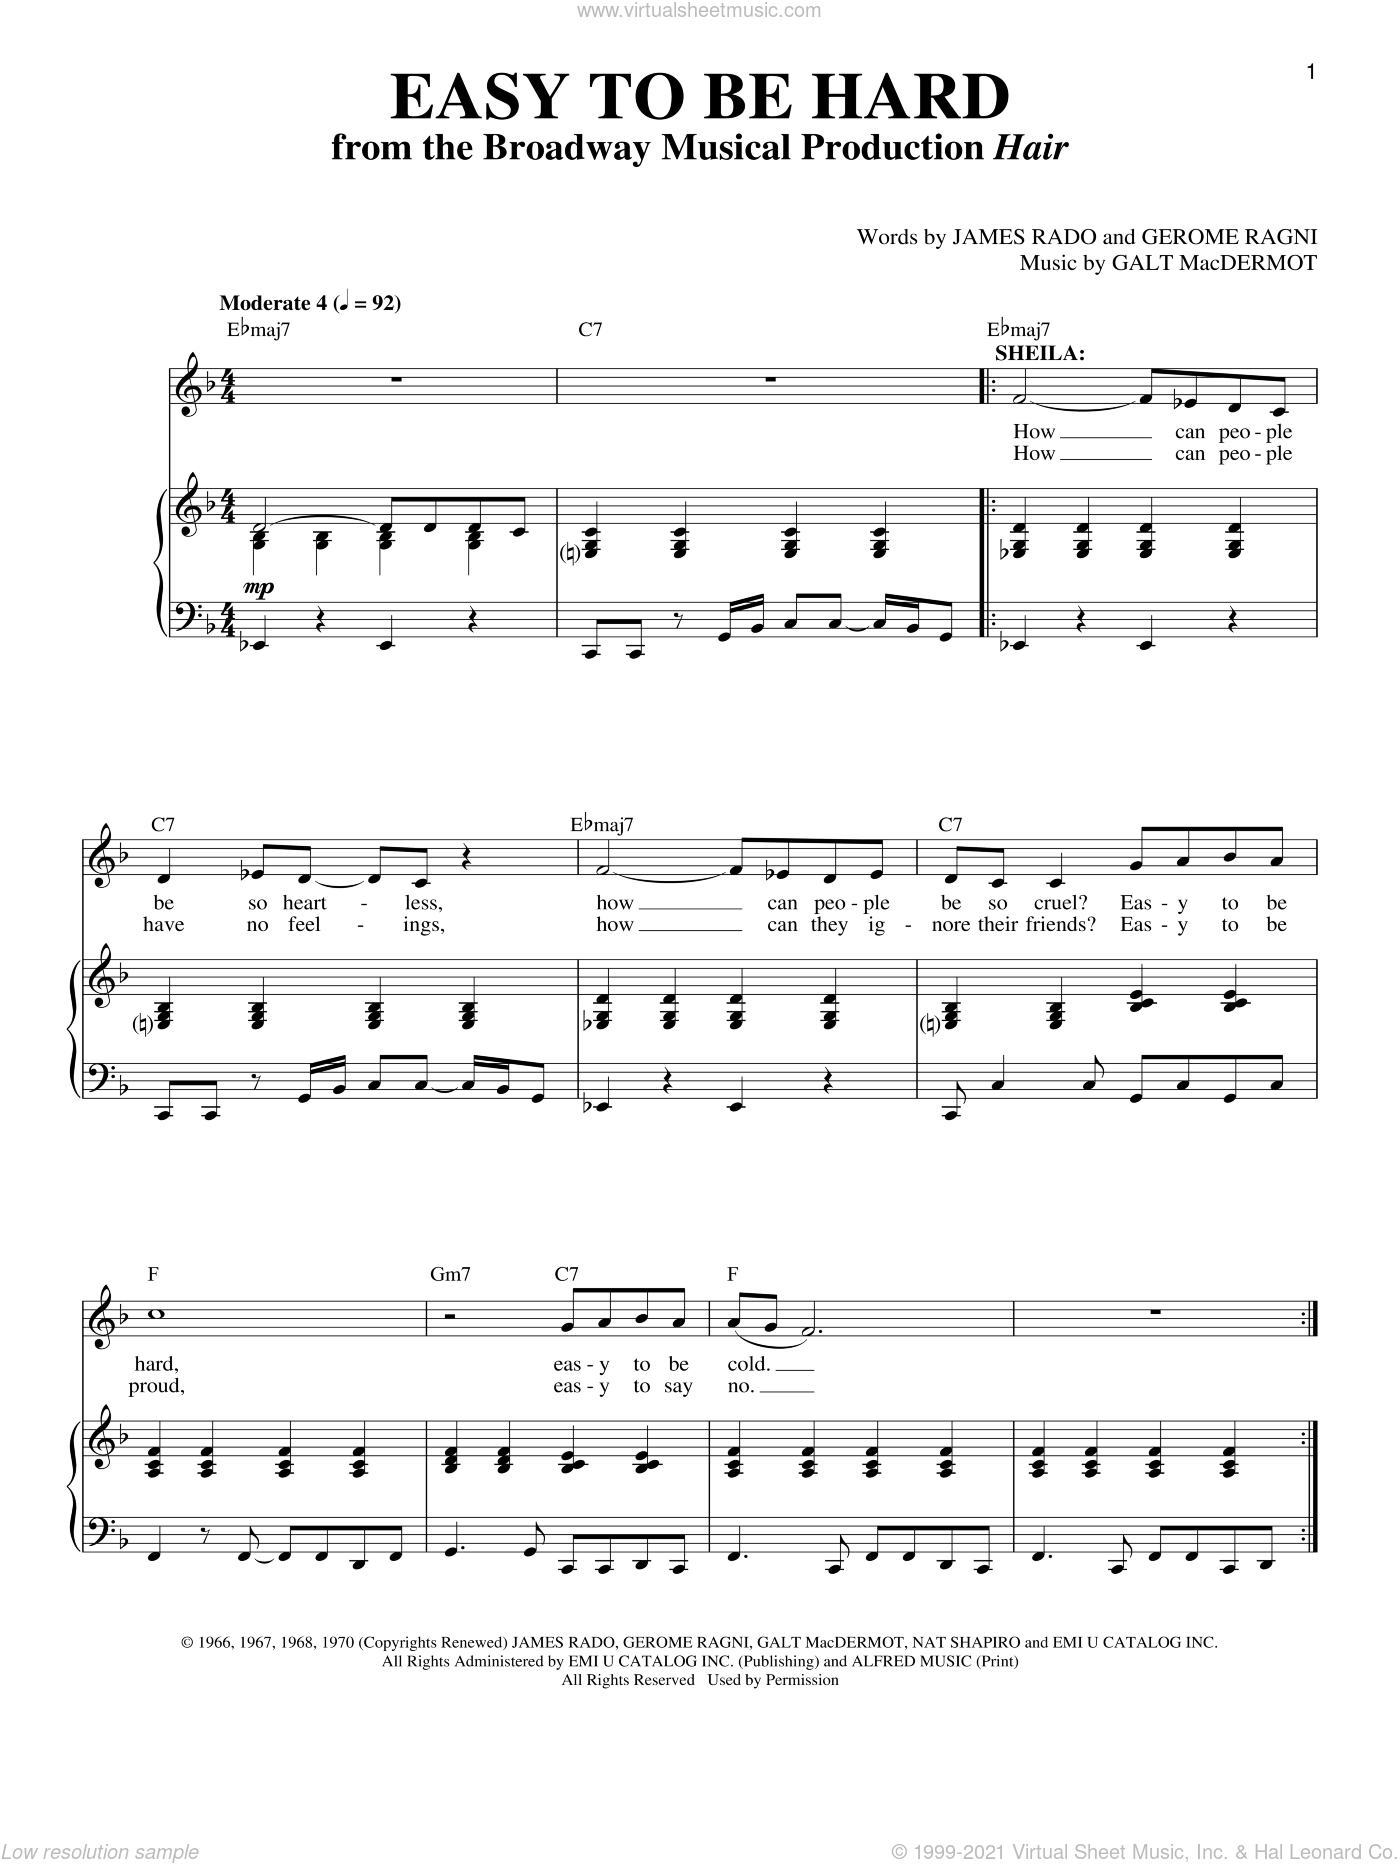 Easy To Be Hard sheet music for voice and piano by Galt MacDermot, Gerome Ragni and James Rado, intermediate skill level